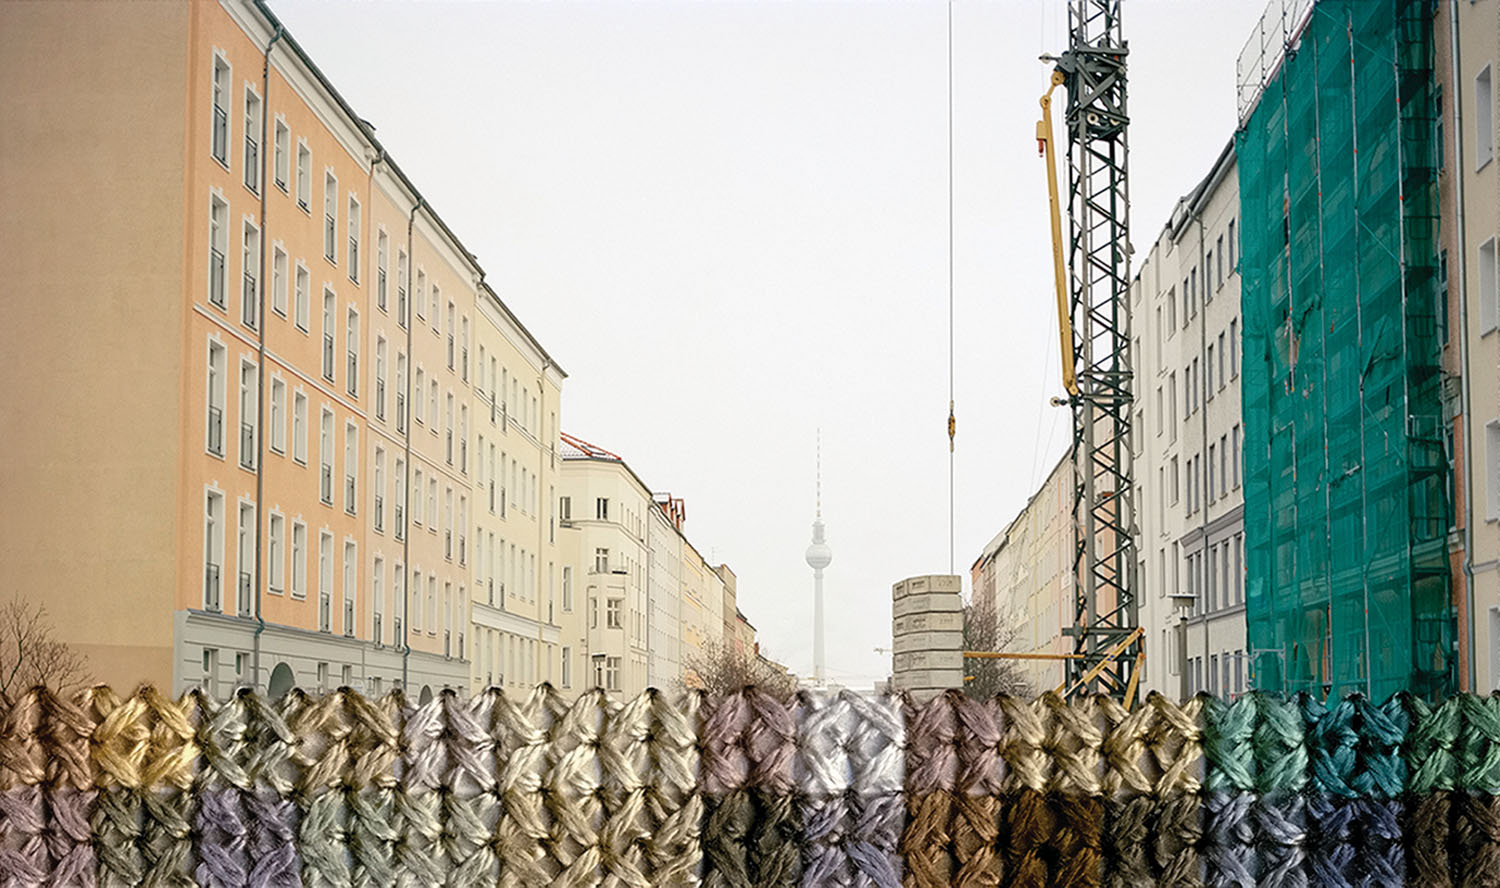 A photograph from the Berlin series by Diane Meyer.